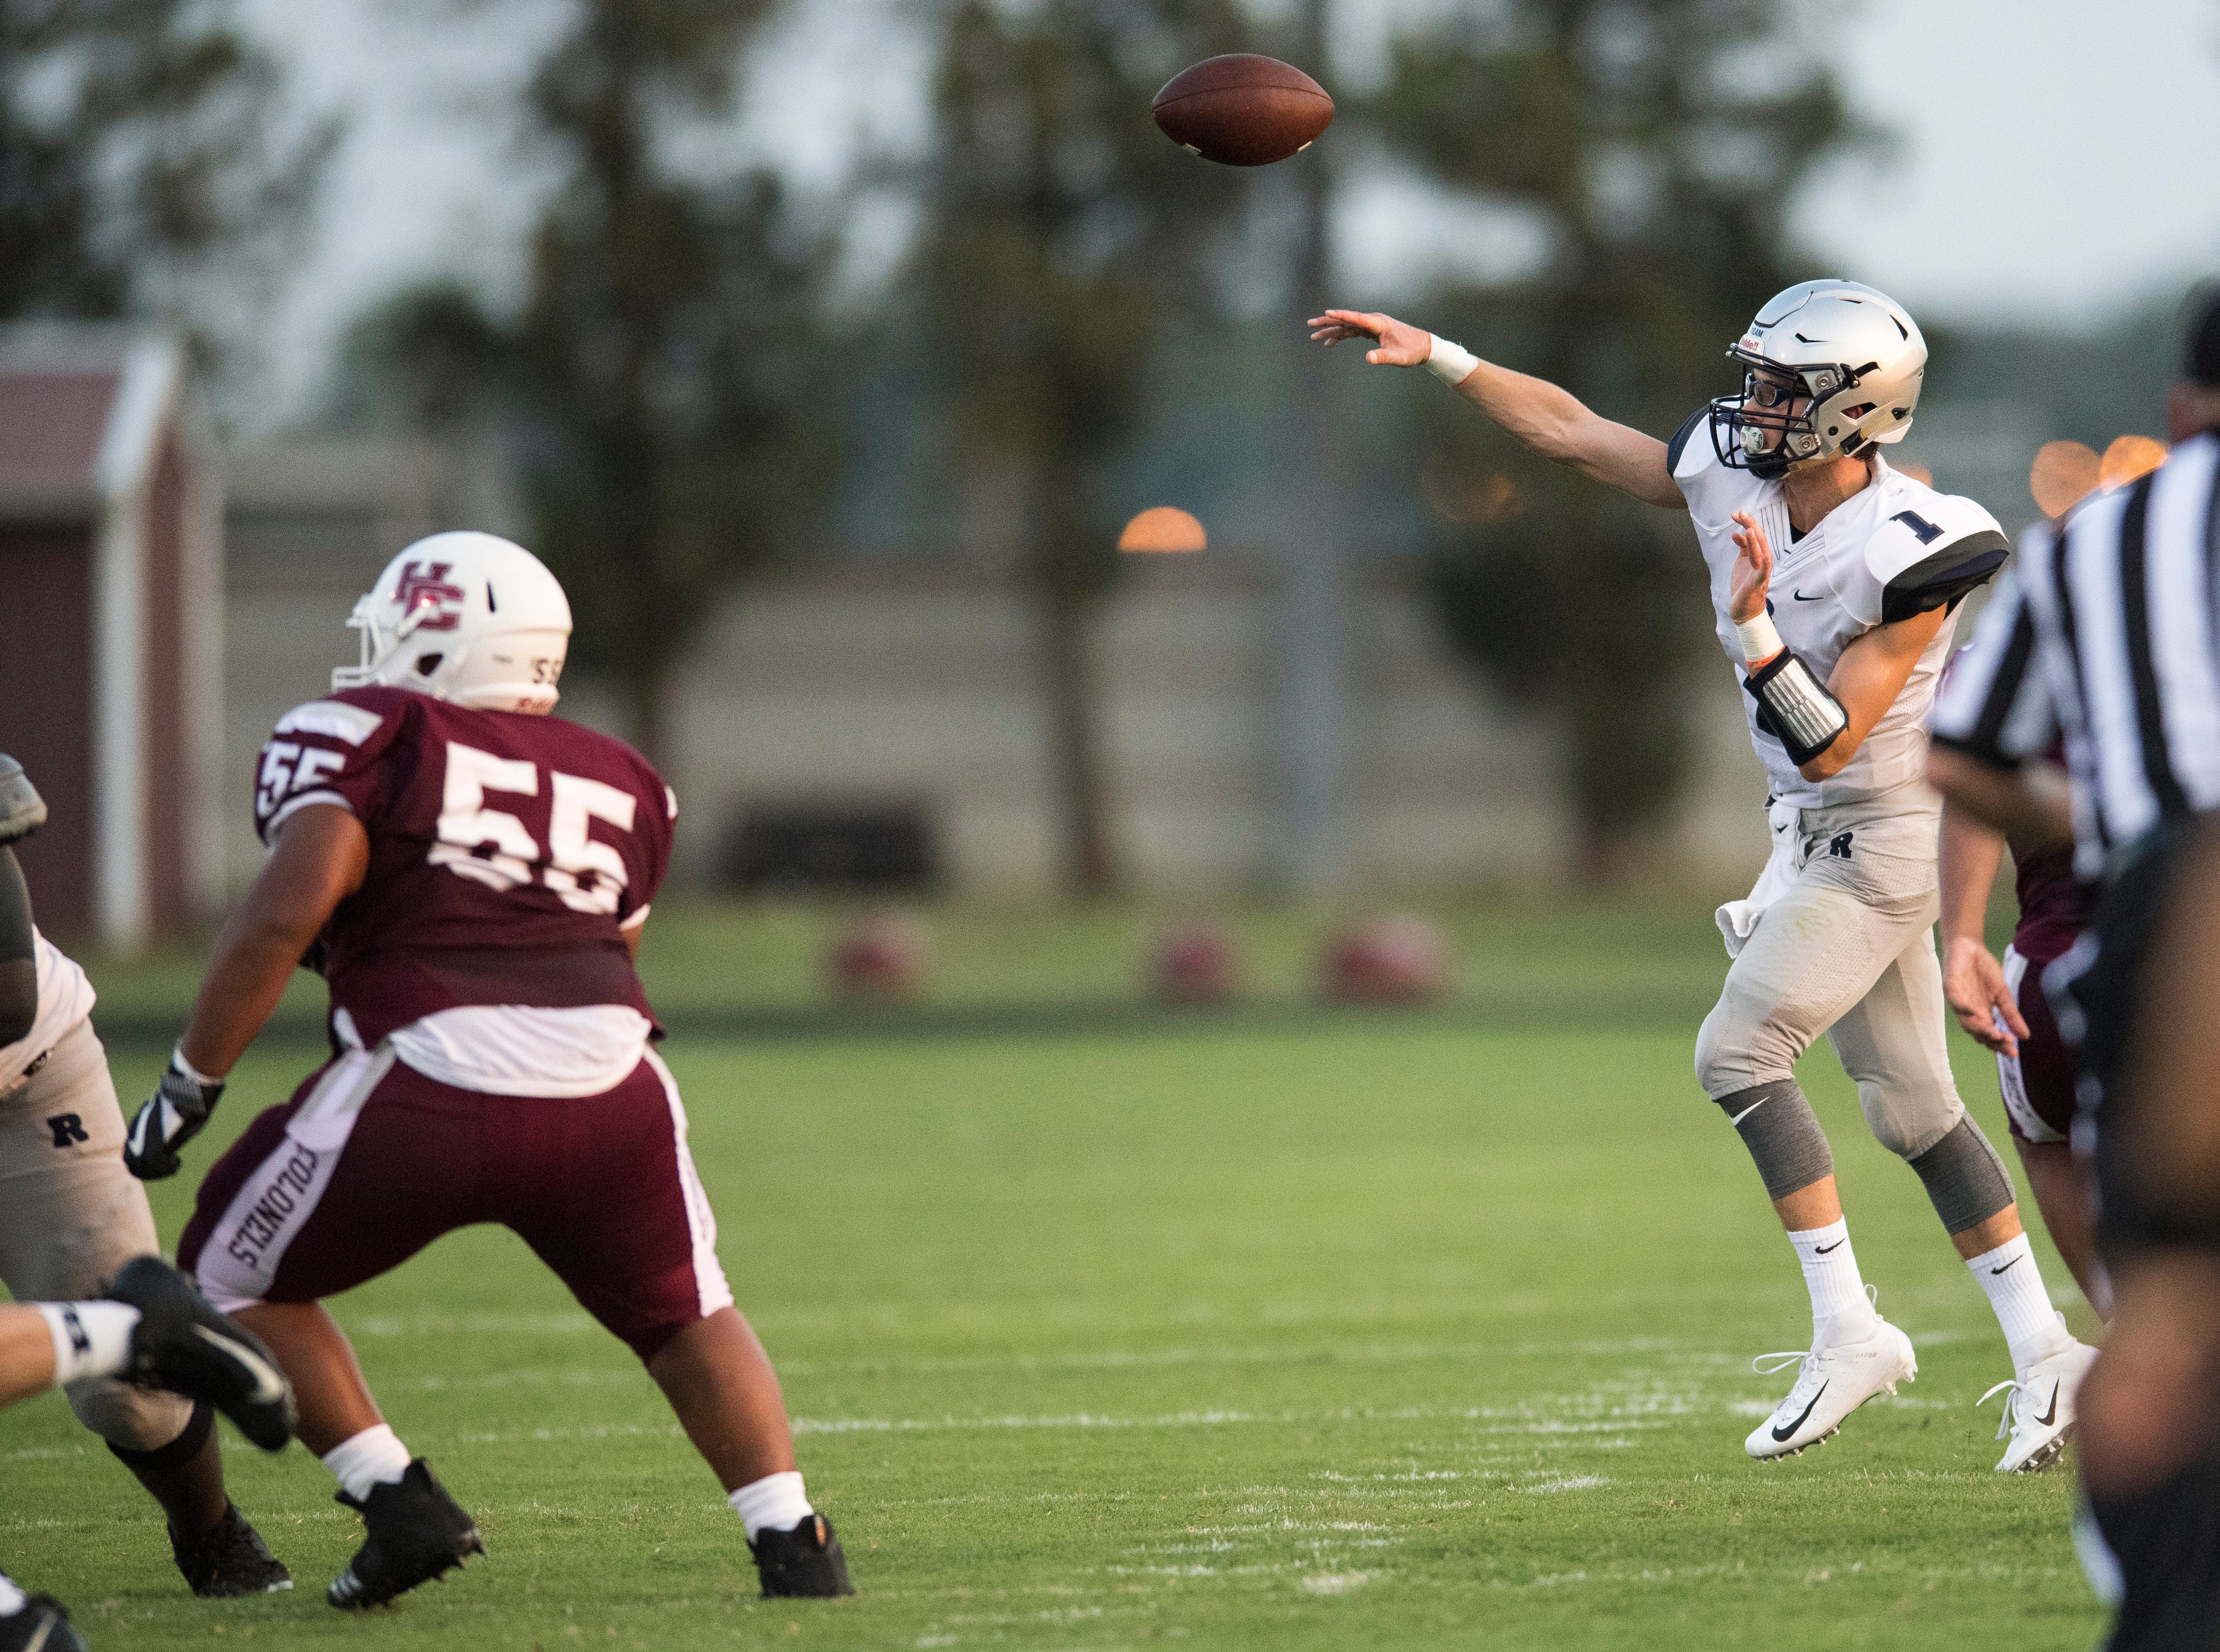 Reitz's Quarterback Eli Wiethop (1)  makes a pass during the Reitz vs Henderson County game at Colonel Stadium Friday, August 17, 2018. The Panthers defeated the Colonels 41-35 in the season opening game.